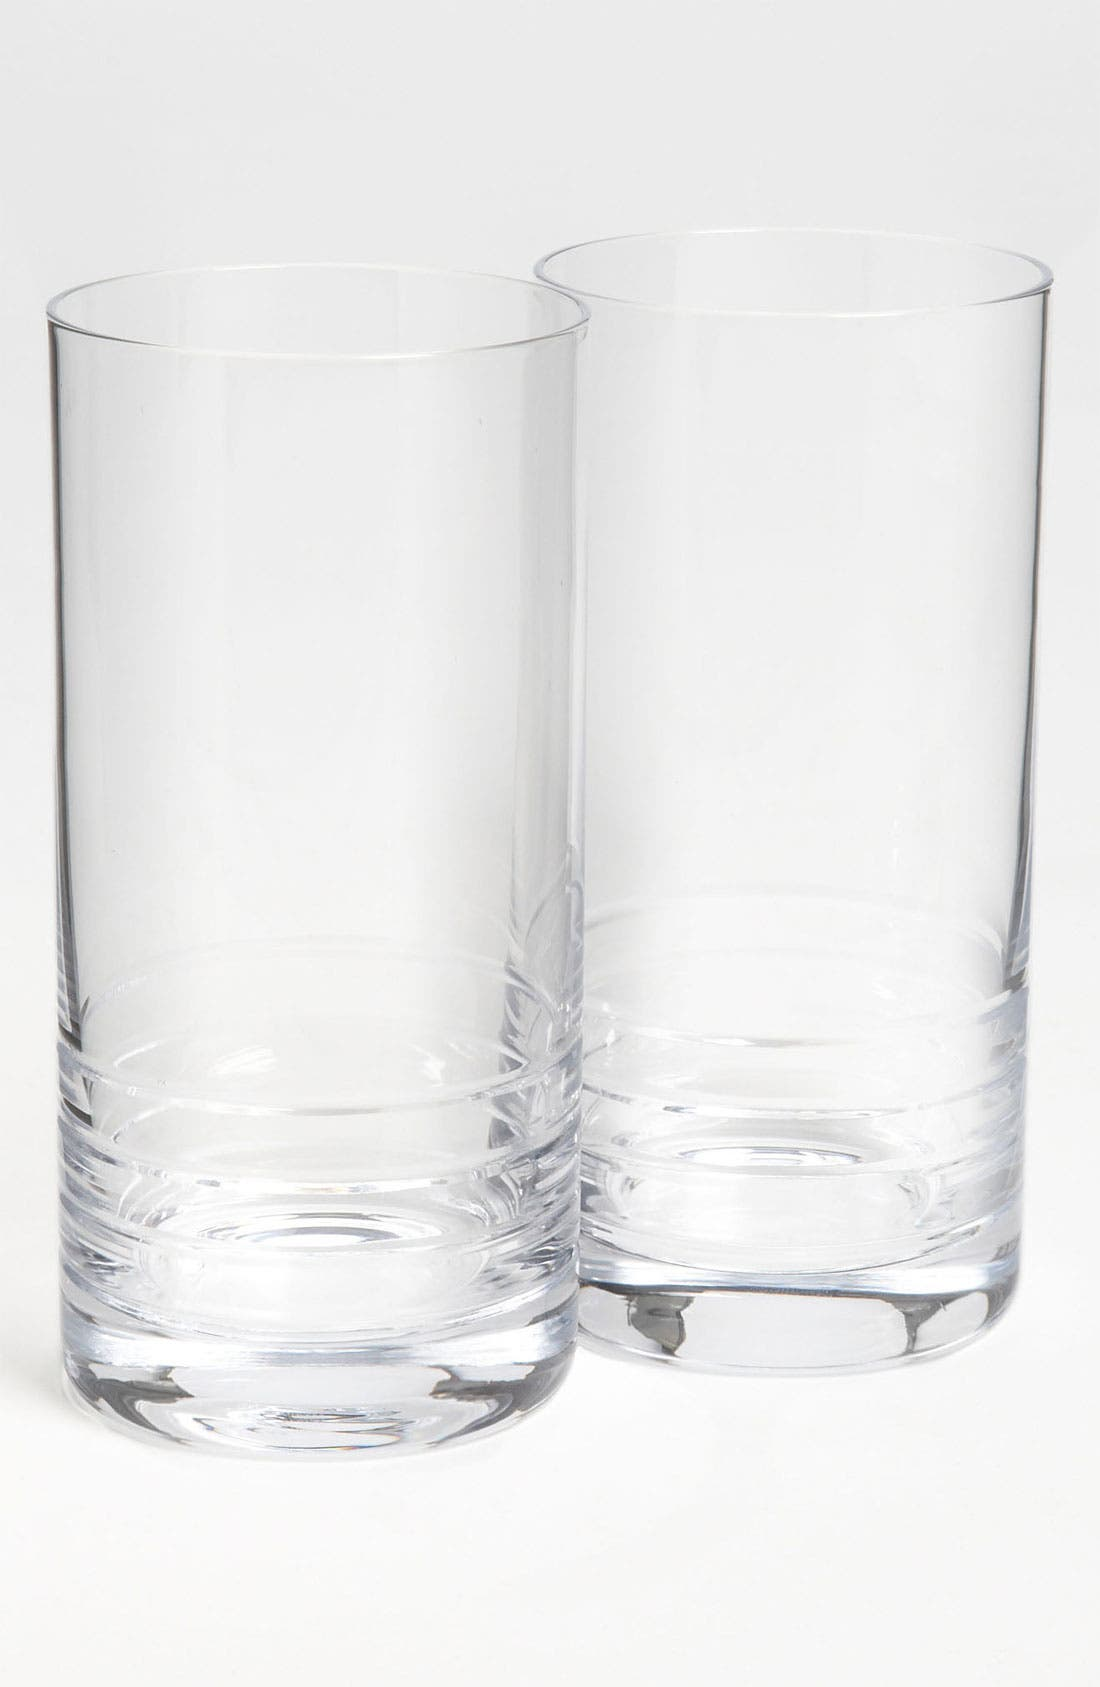 Main Image - kate spade new york 'percival place' highball glasses (Set of 2)